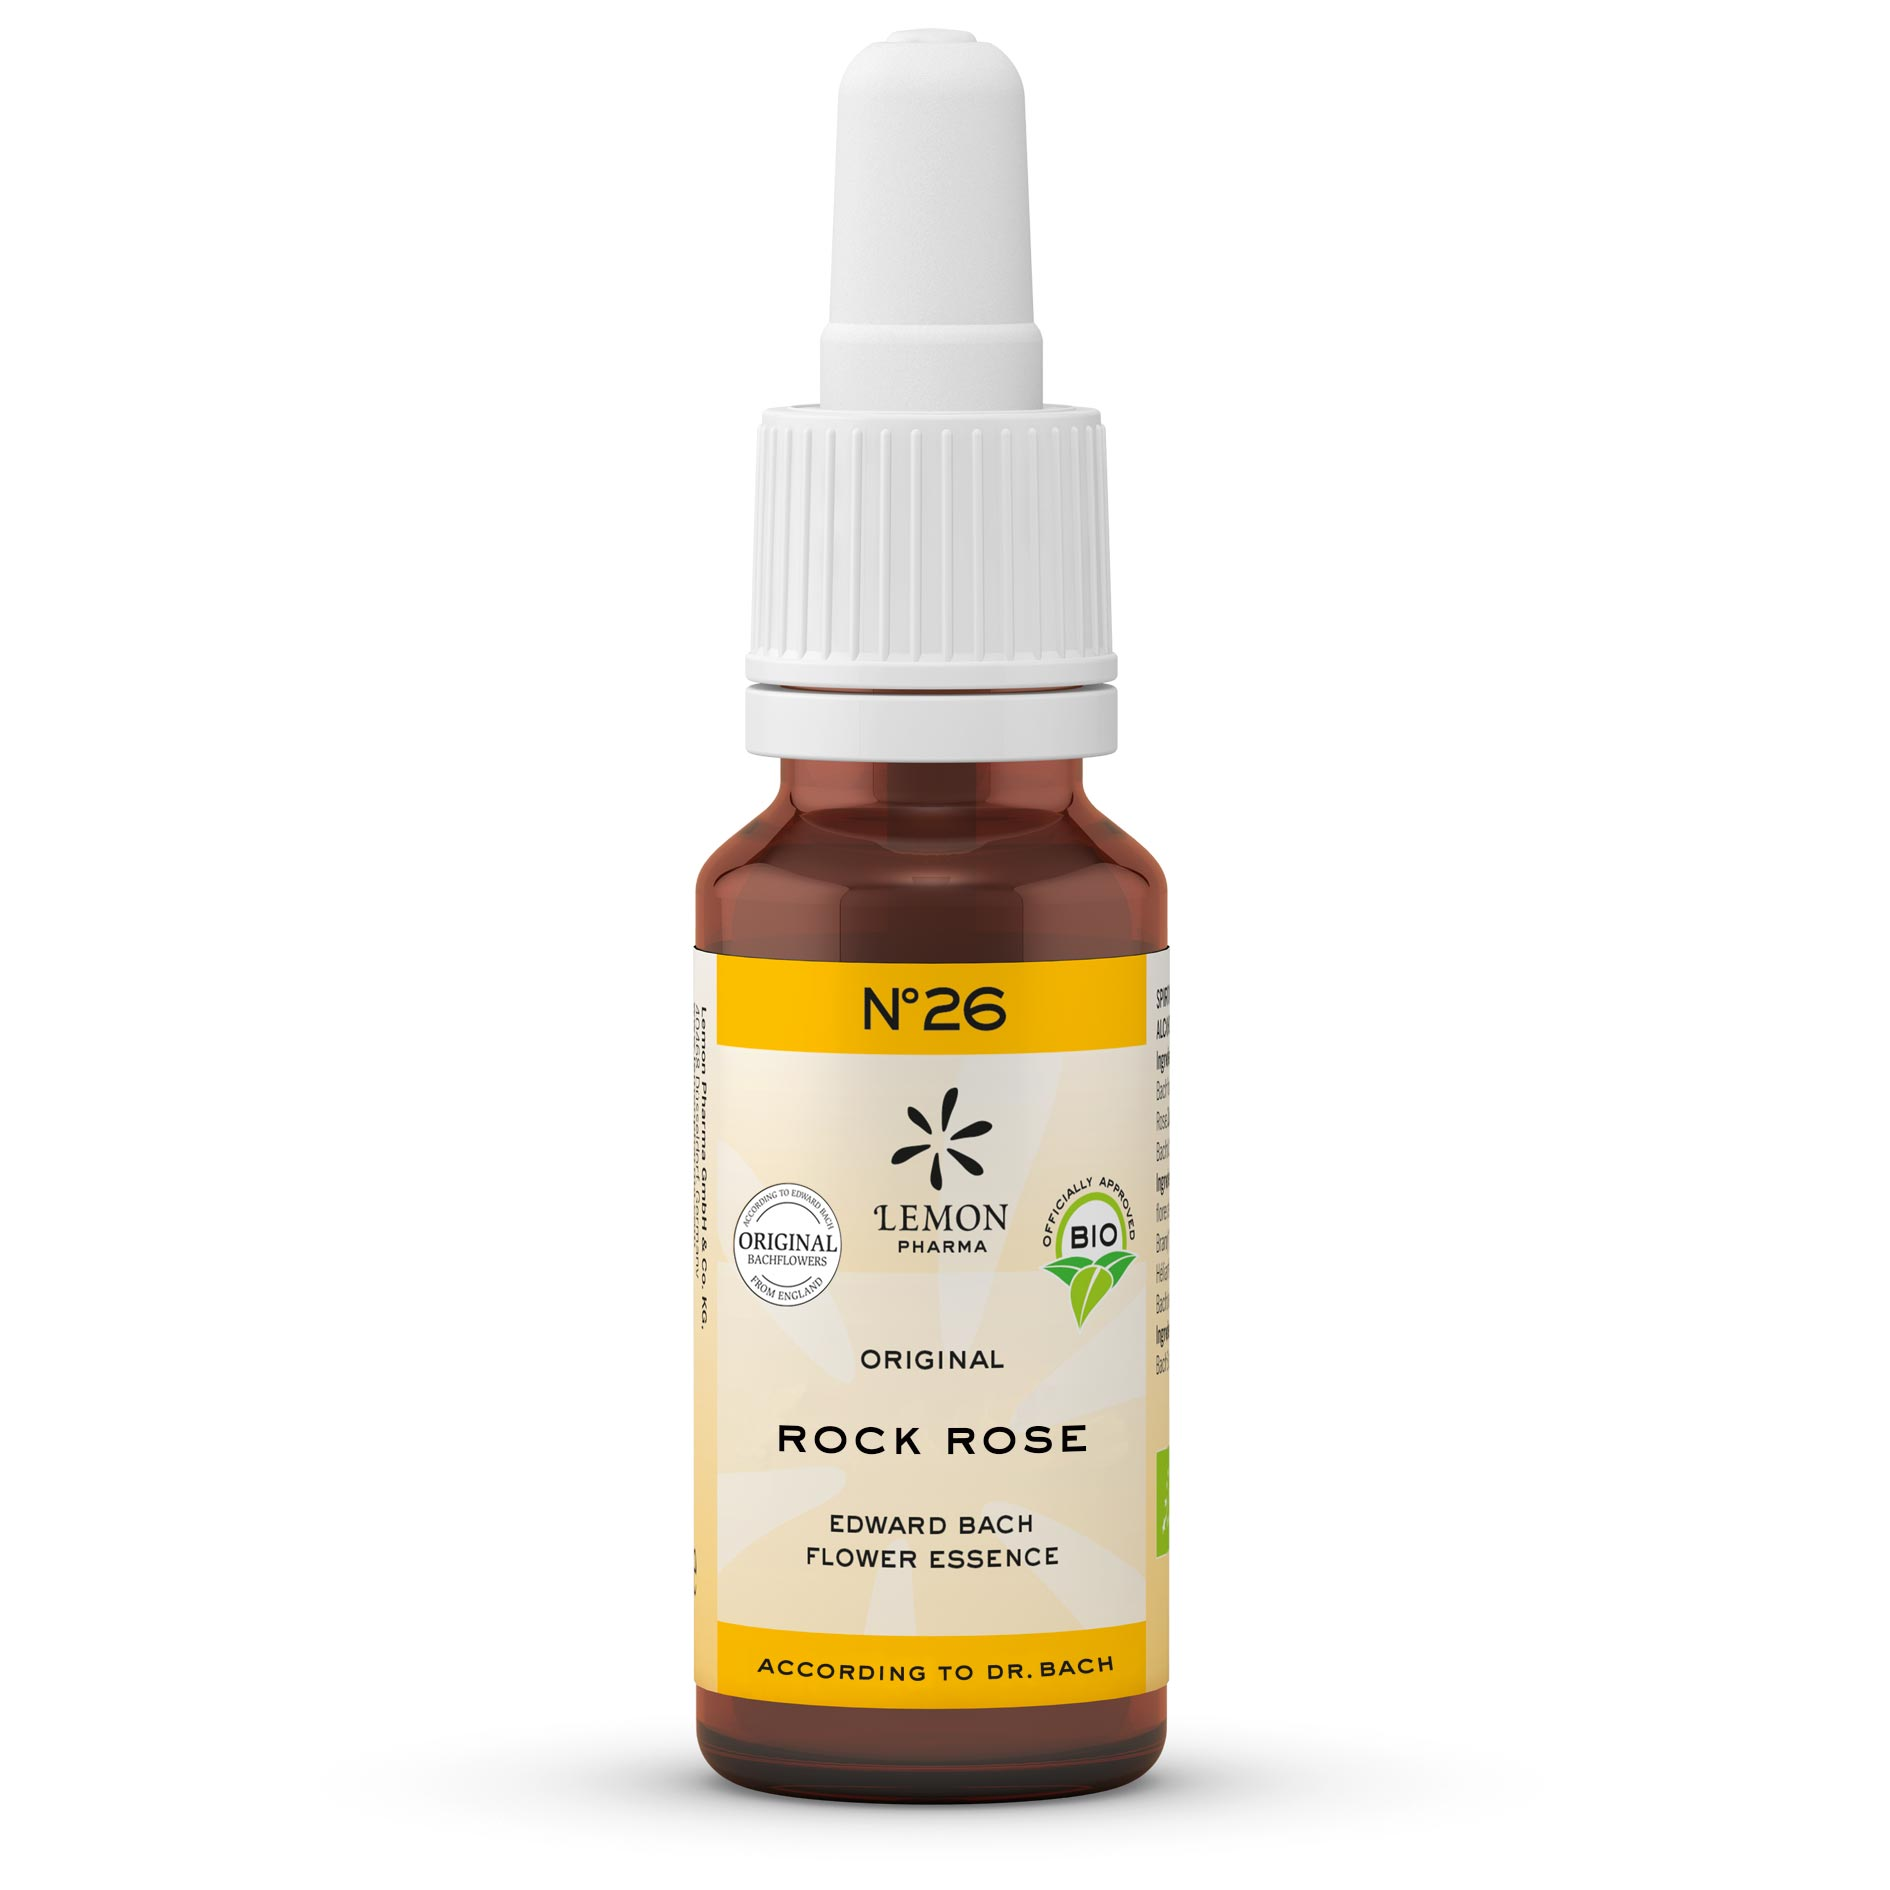 Gotas Flores de Bach Lemon Pharma Original Nº 26 Rock Rose Heliantemo Fuerza Interna